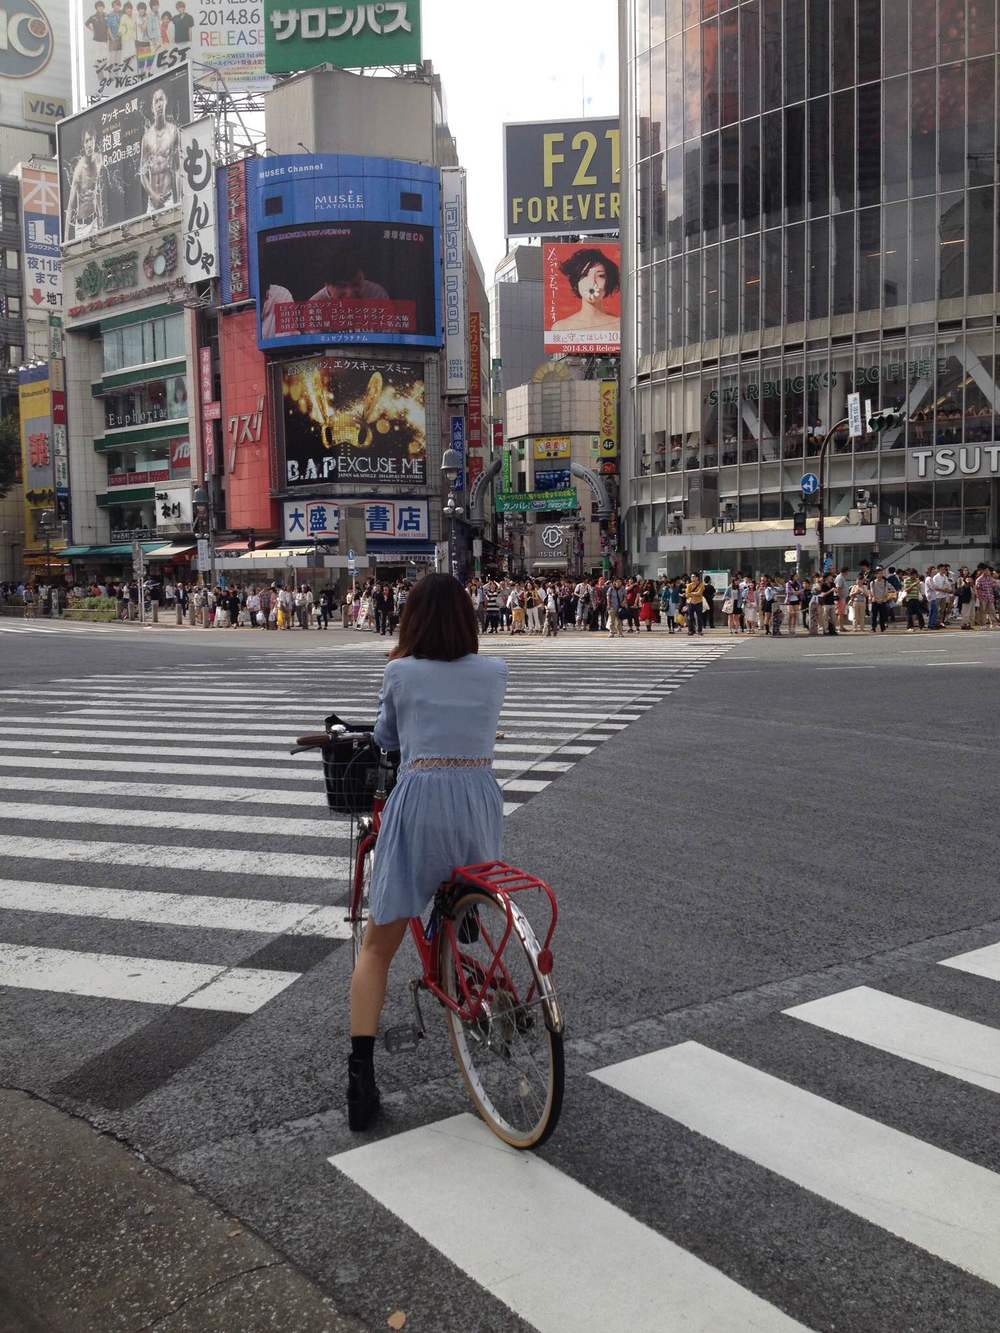 A girl on a bicycle at Shibuya's famous crosswalk, daring to wait in the road for the light to turn